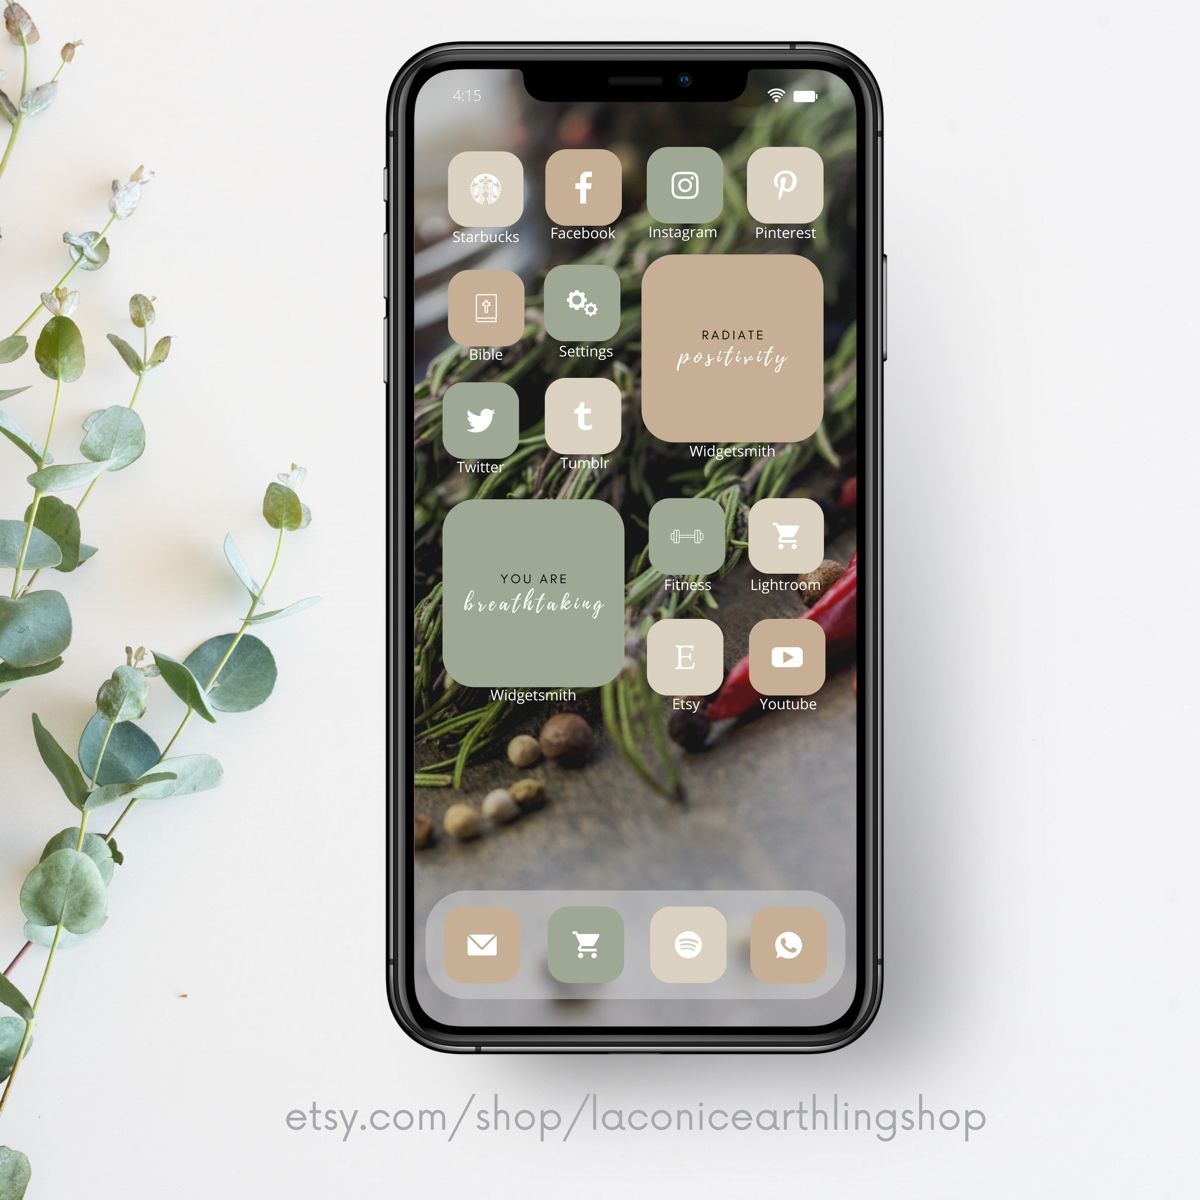 If you don't know how to customize, first check out a … IOS 14 Earth Tones Neutral Aesthetic 600 App Icons Pack ...